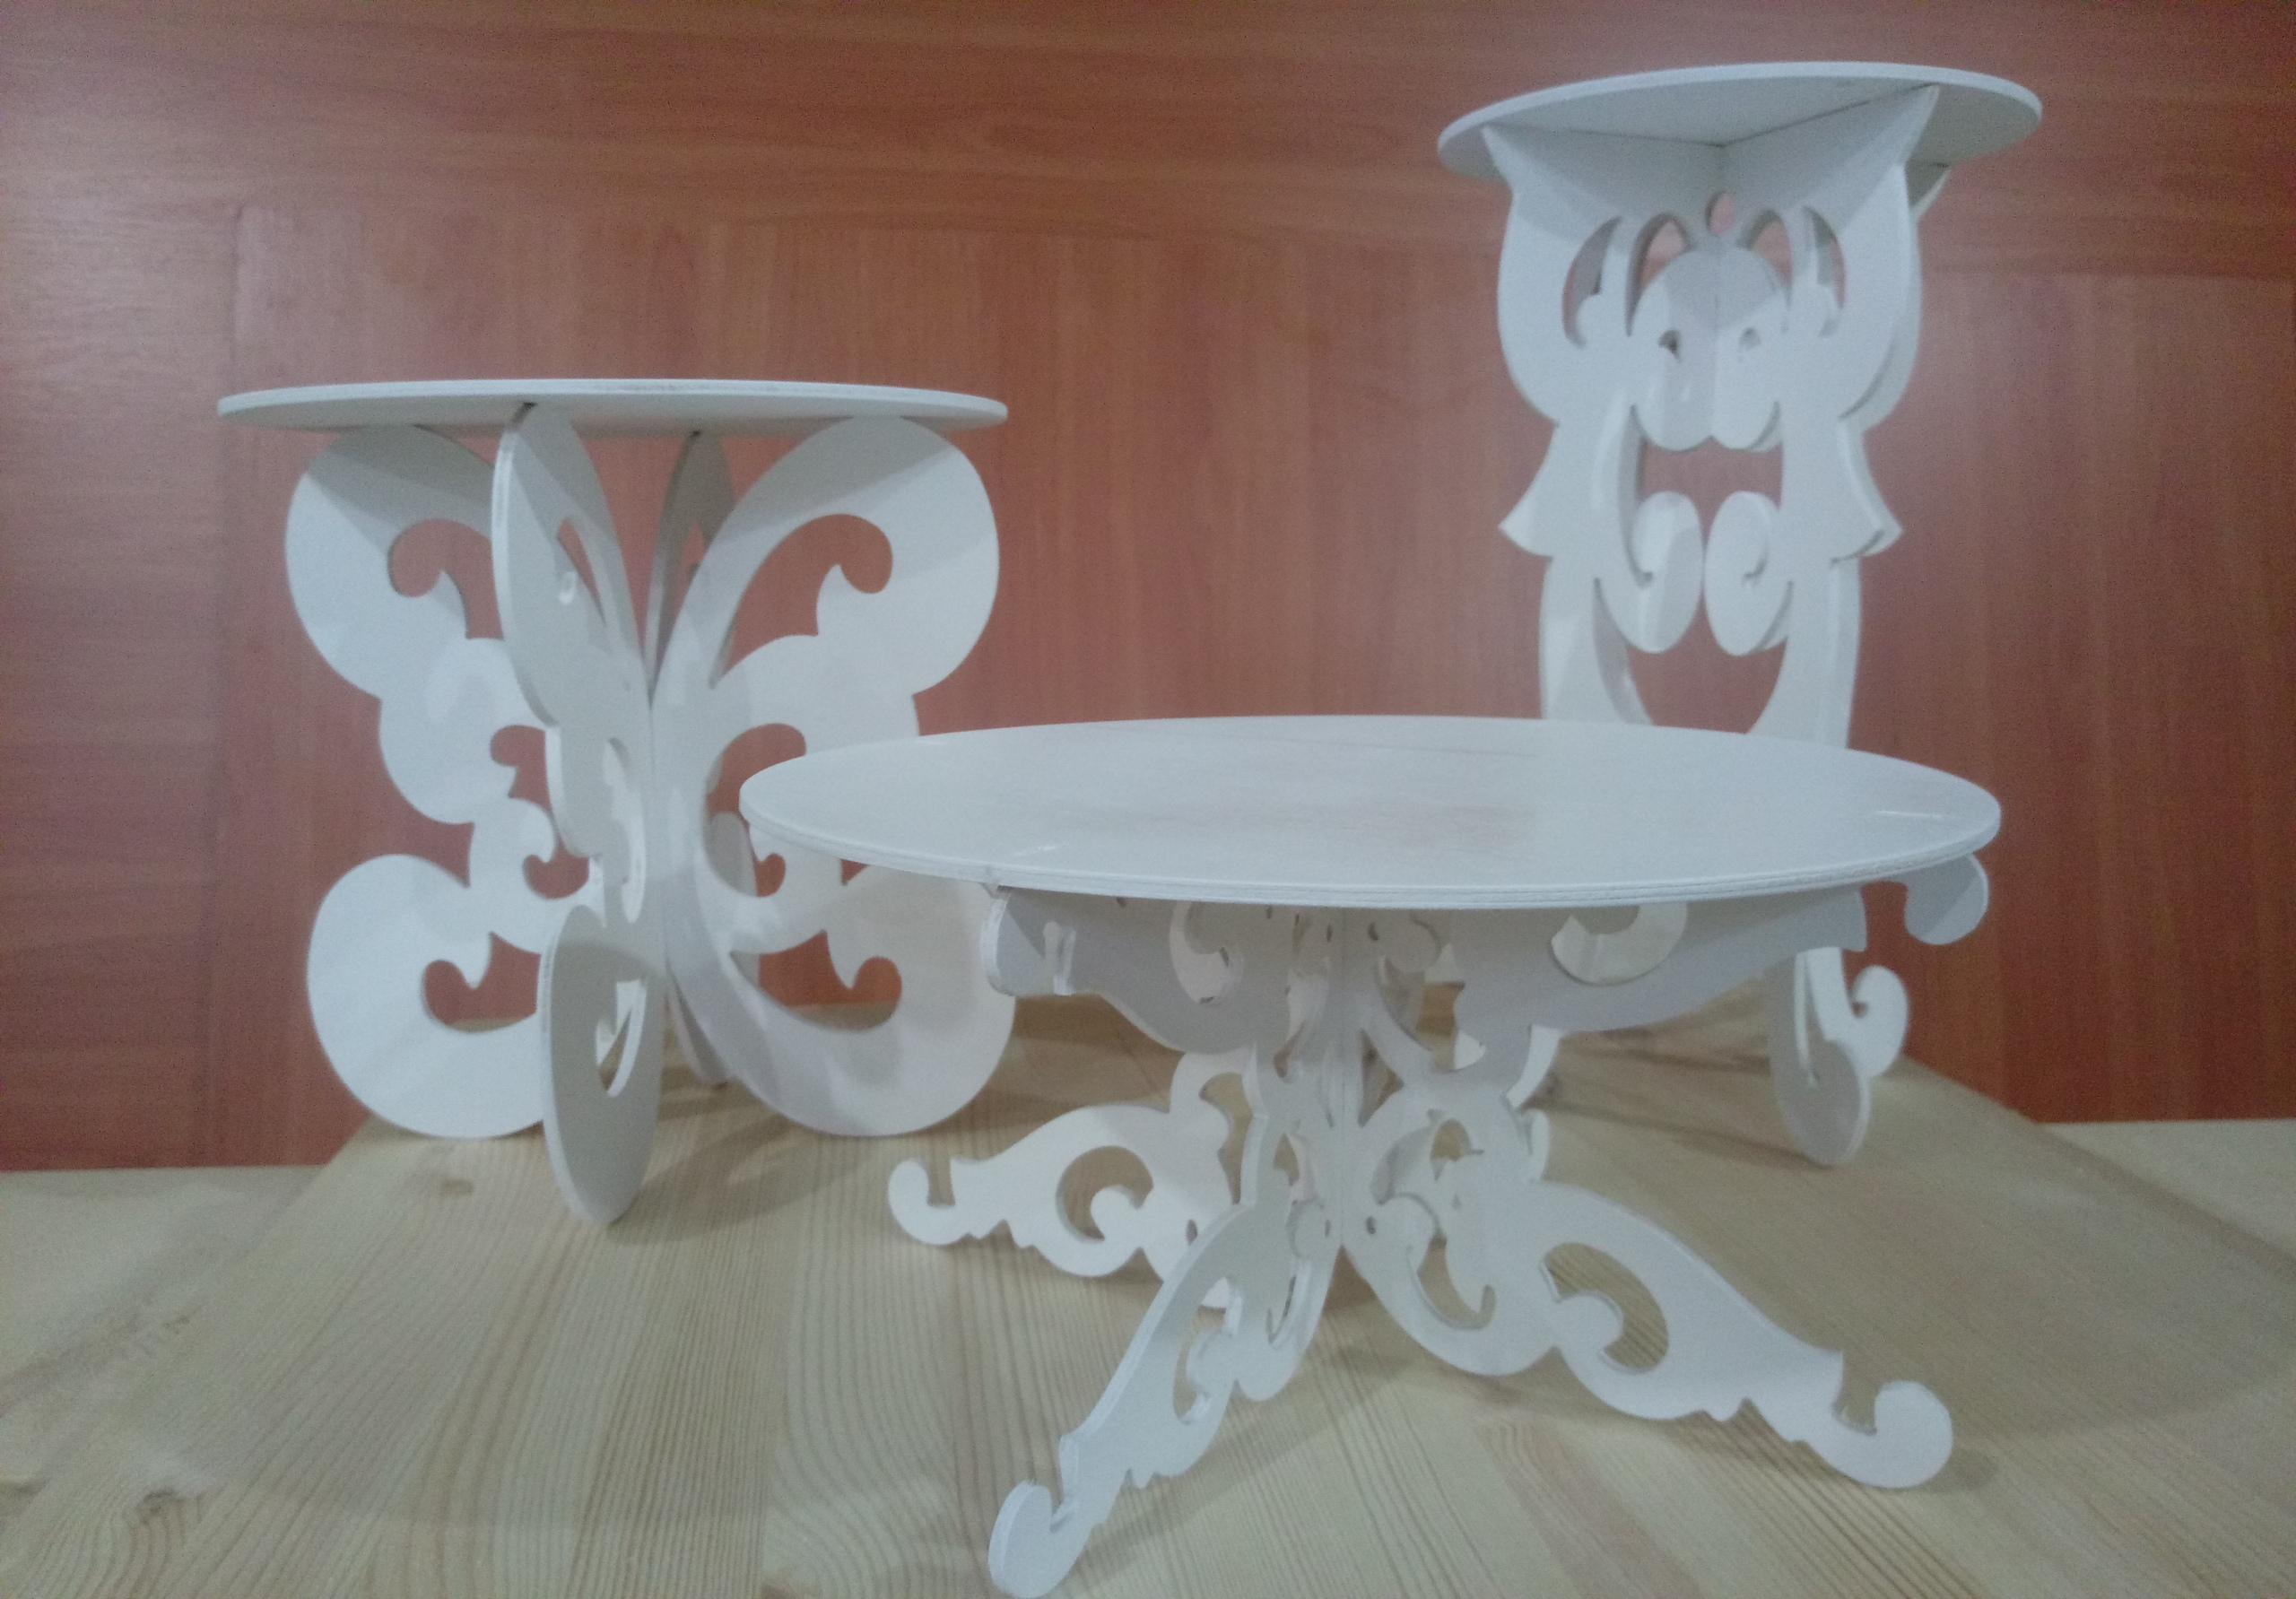 Decorative Tables 3D Puzzle Free Vector